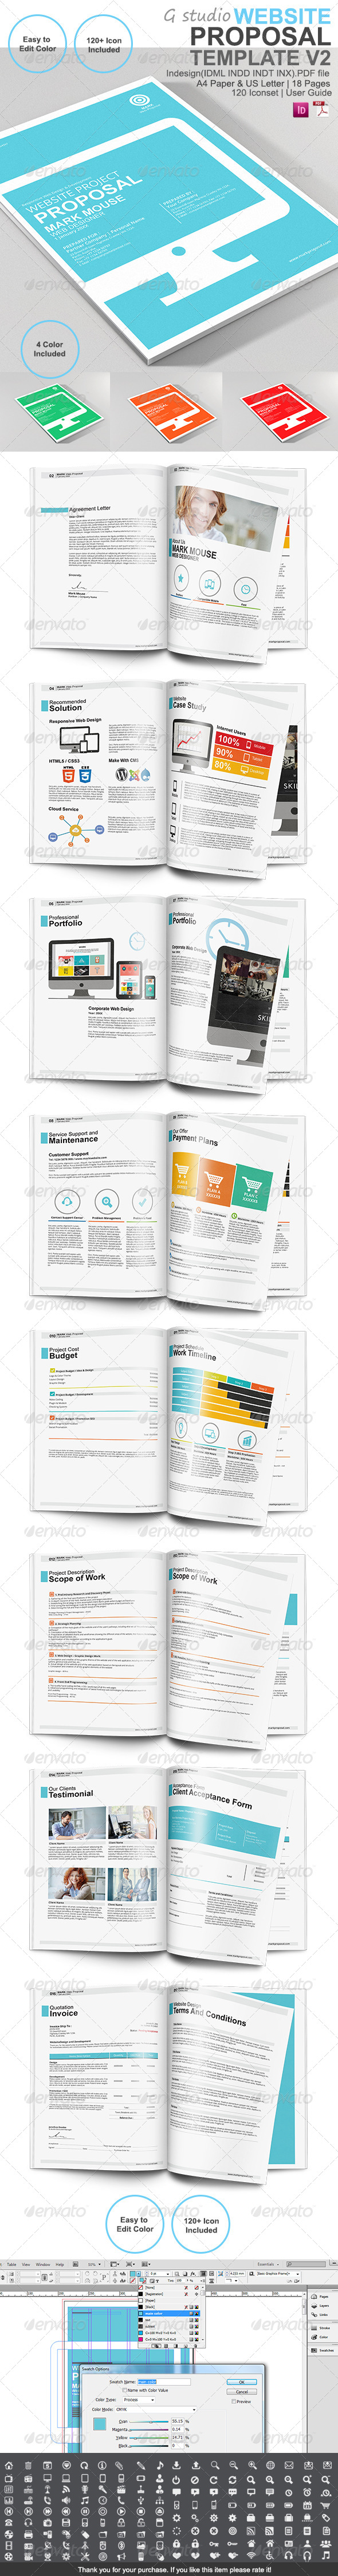 GraphicRiver Gstudio Website Proposal Template V2 7272133